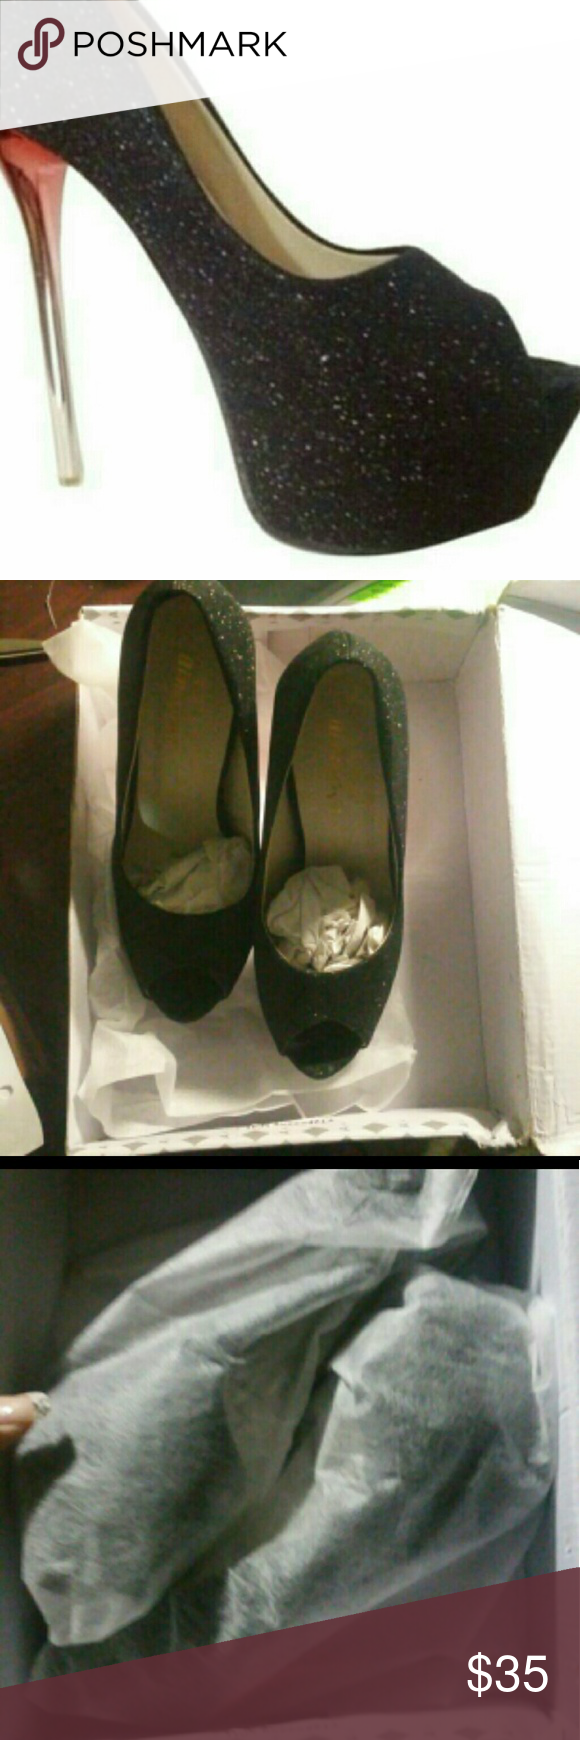 Amjy New in box Narrow fit size 6 Way to small don't ask for them to be model Cover photo is my photo please ask if you need to use it.  It was taken by me and the background professionally cleaned. 6 inch heel Black with Glitter heel is silver and red Shoes Platforms